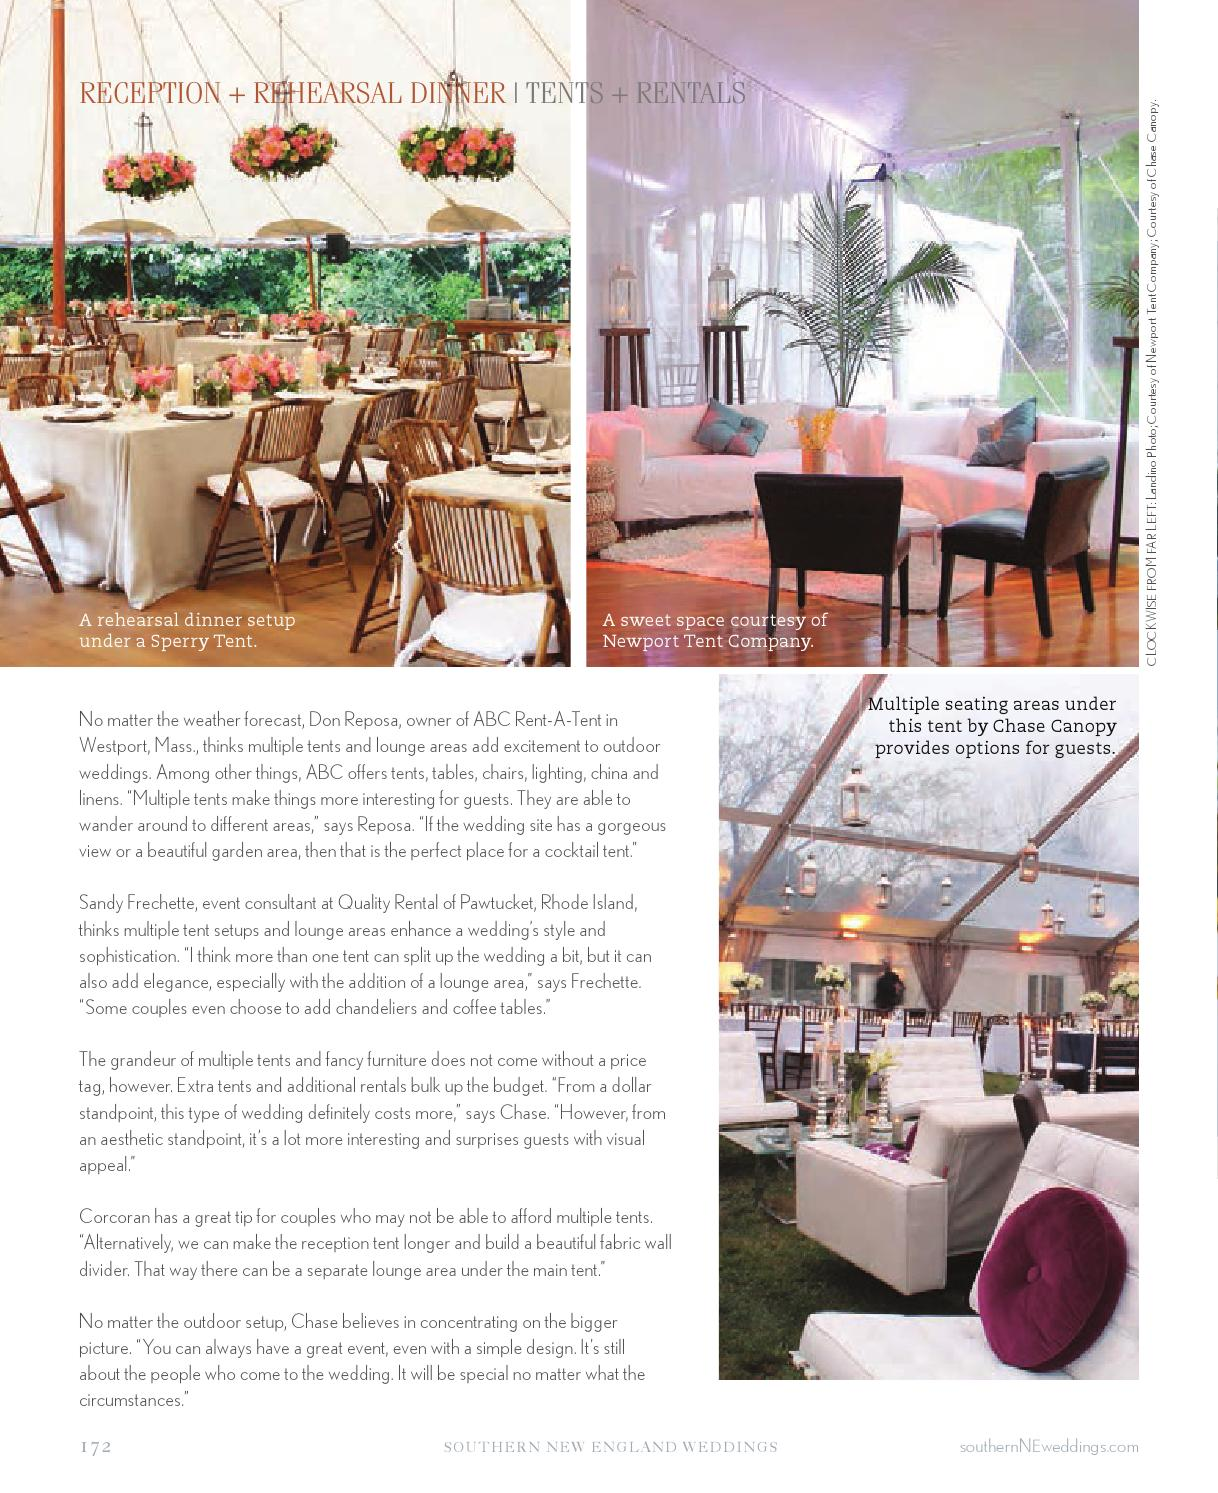 Southern New England Weddings 2015 by Formerly Lighthouse Media Solutions - issuu & Southern New England Weddings 2015 by Formerly: Lighthouse Media ...